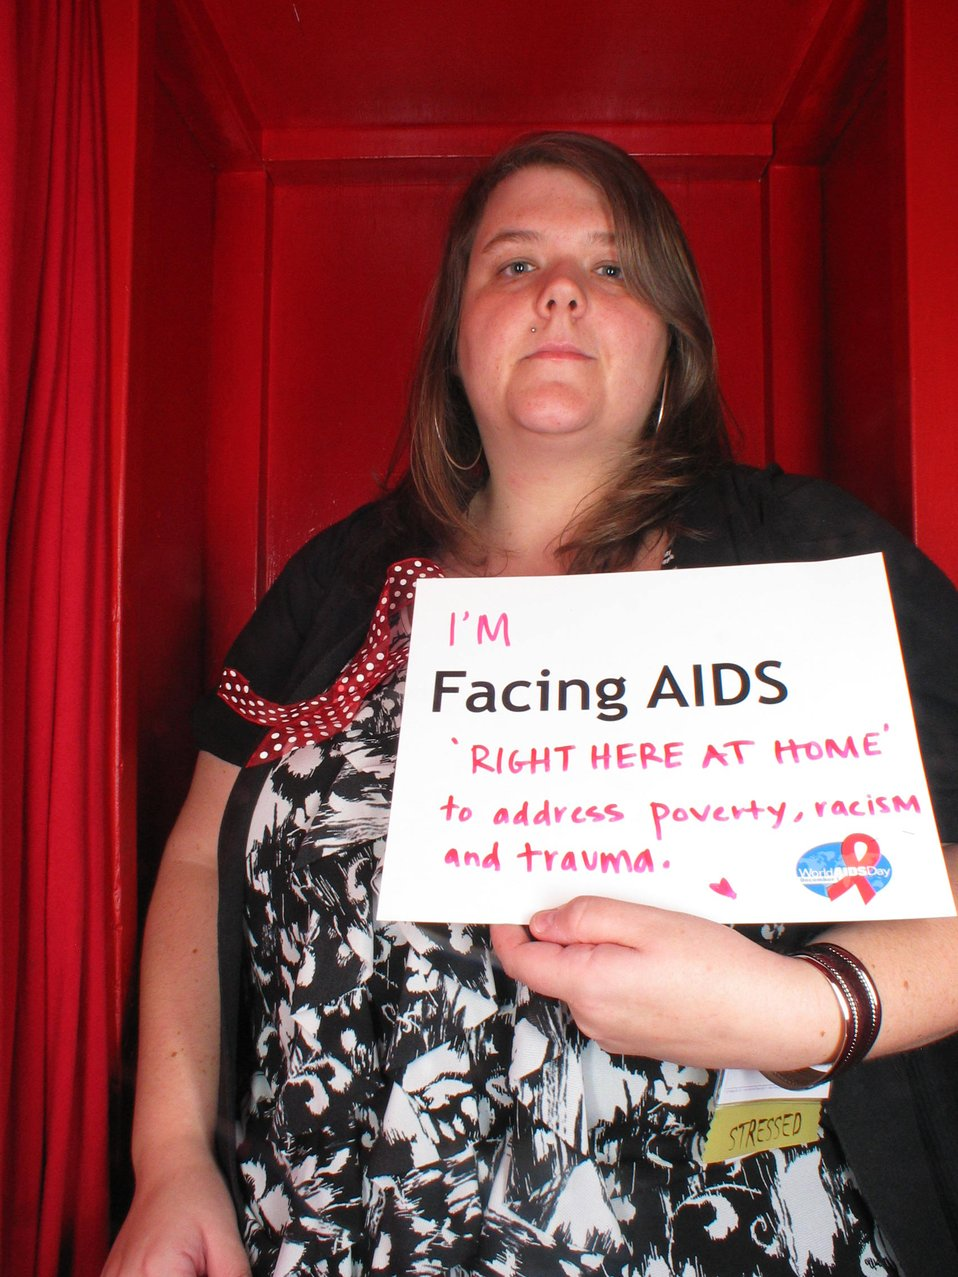 I'm Facing AIDS right here at home to address poverty, racism and trauma.